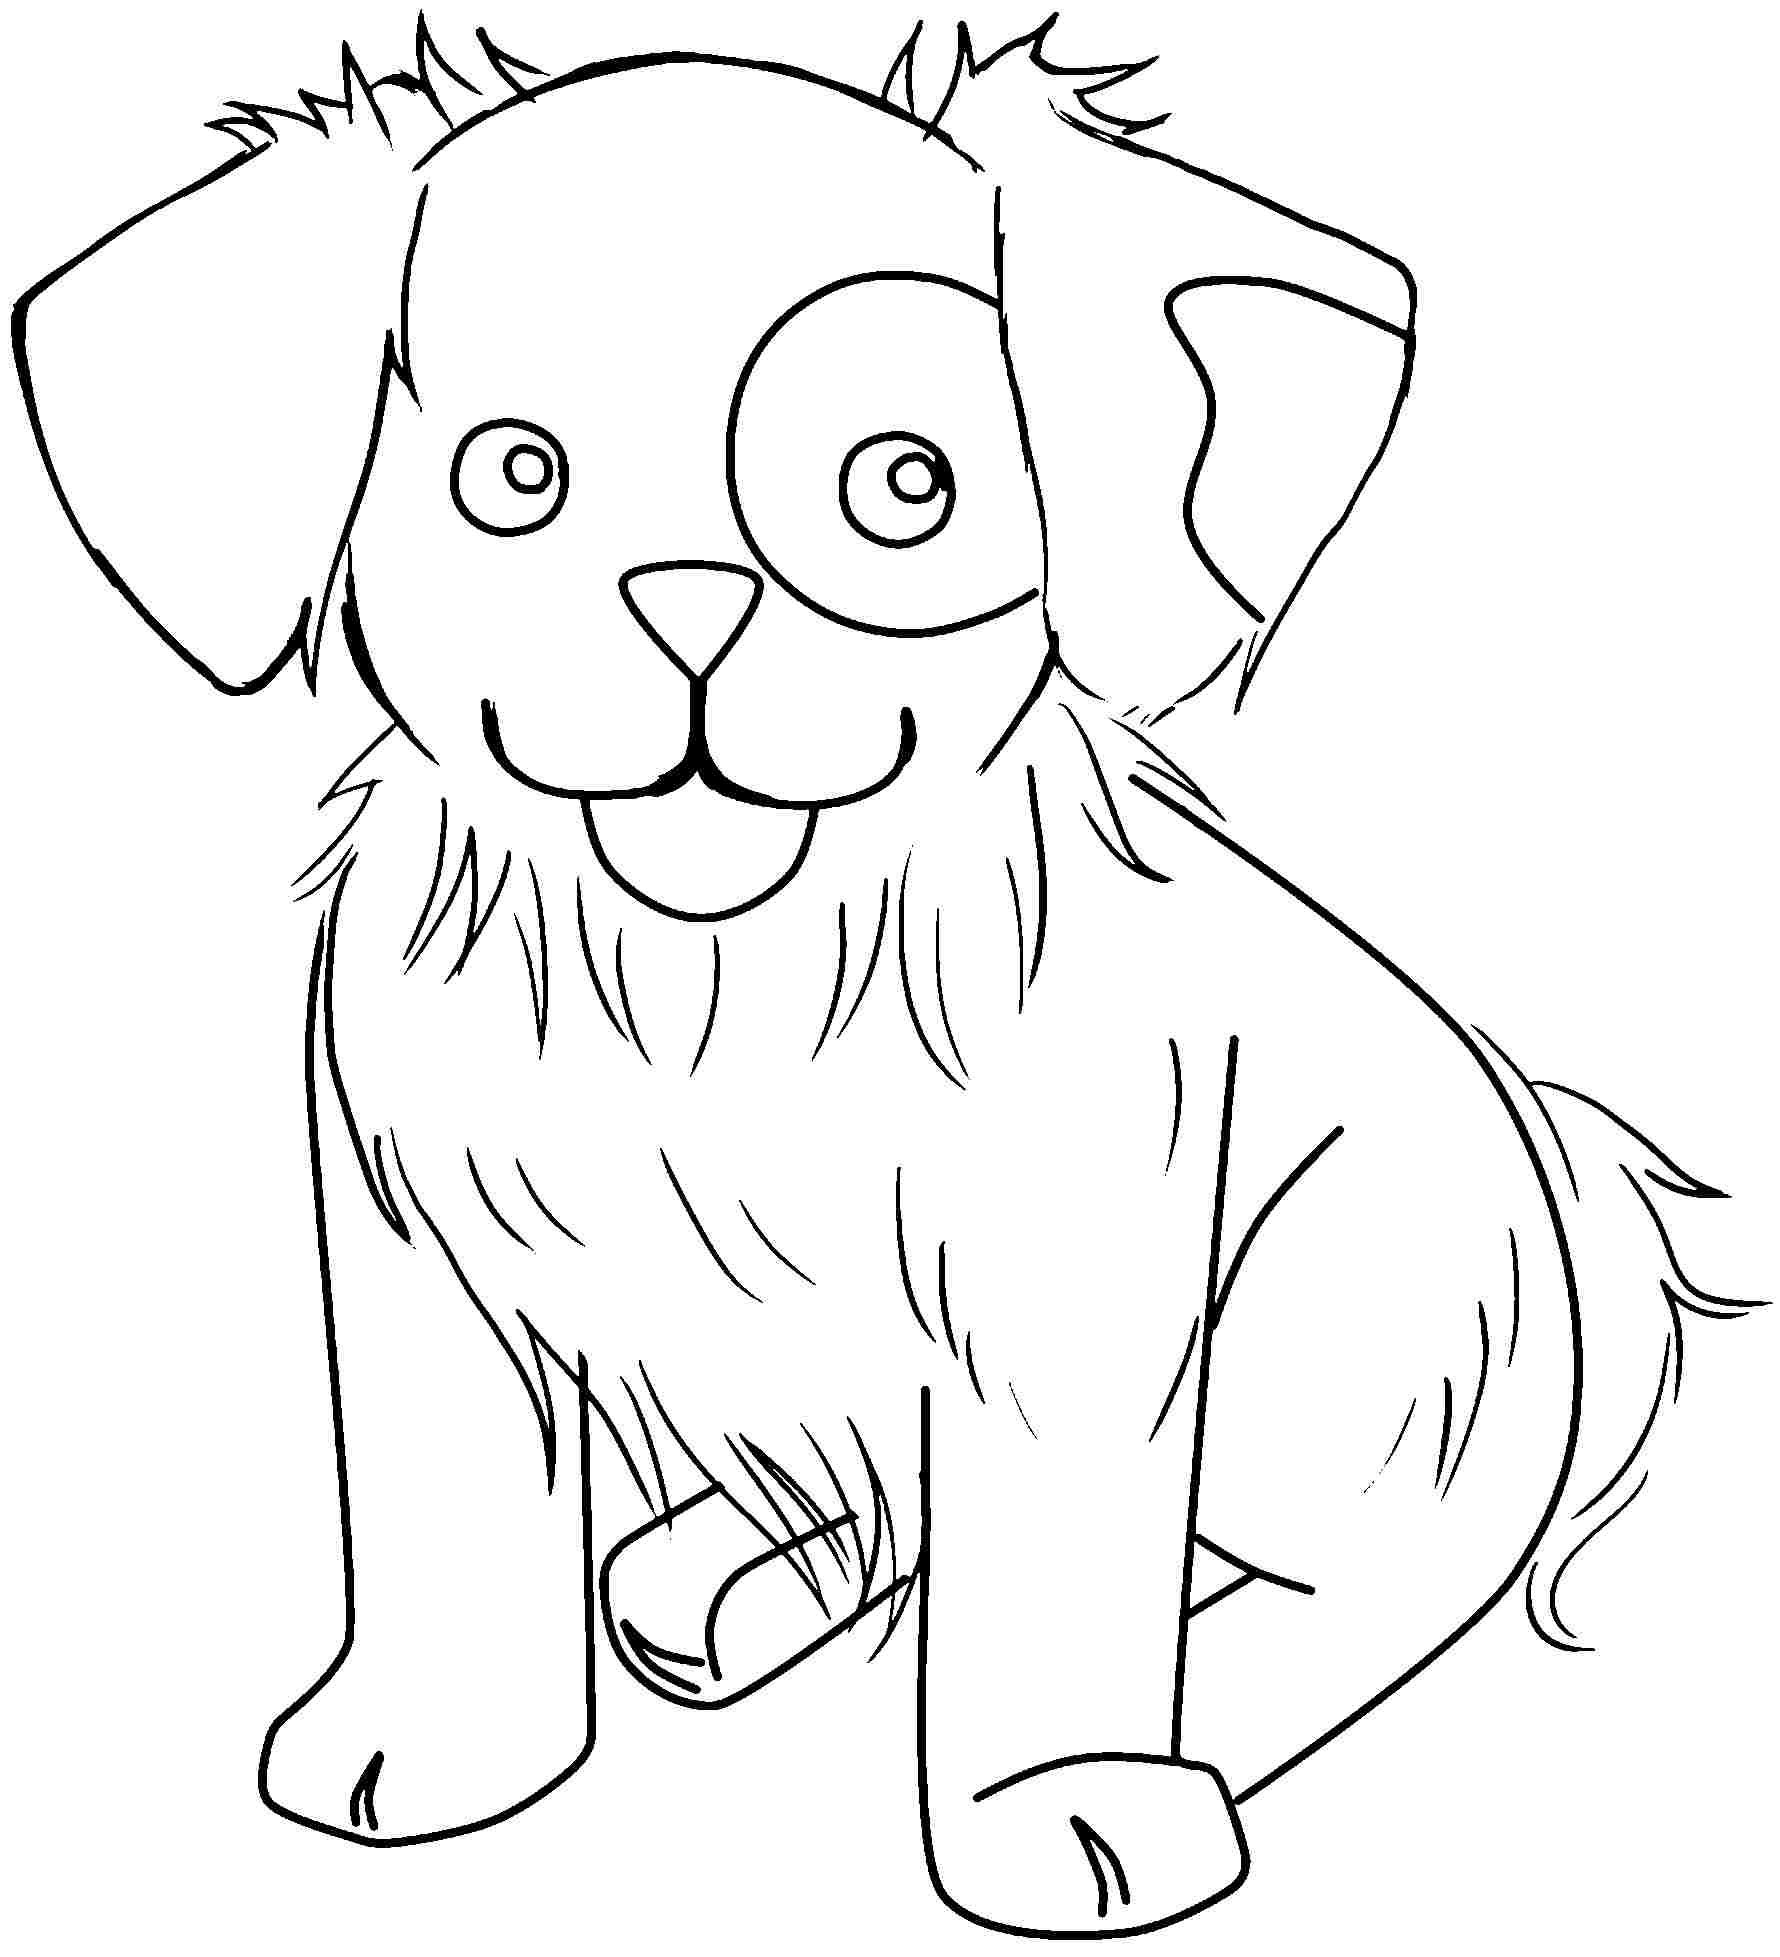 printable dog coloring pagesgif cute dogs coloring coloring - Coloring Pages Animals Printable